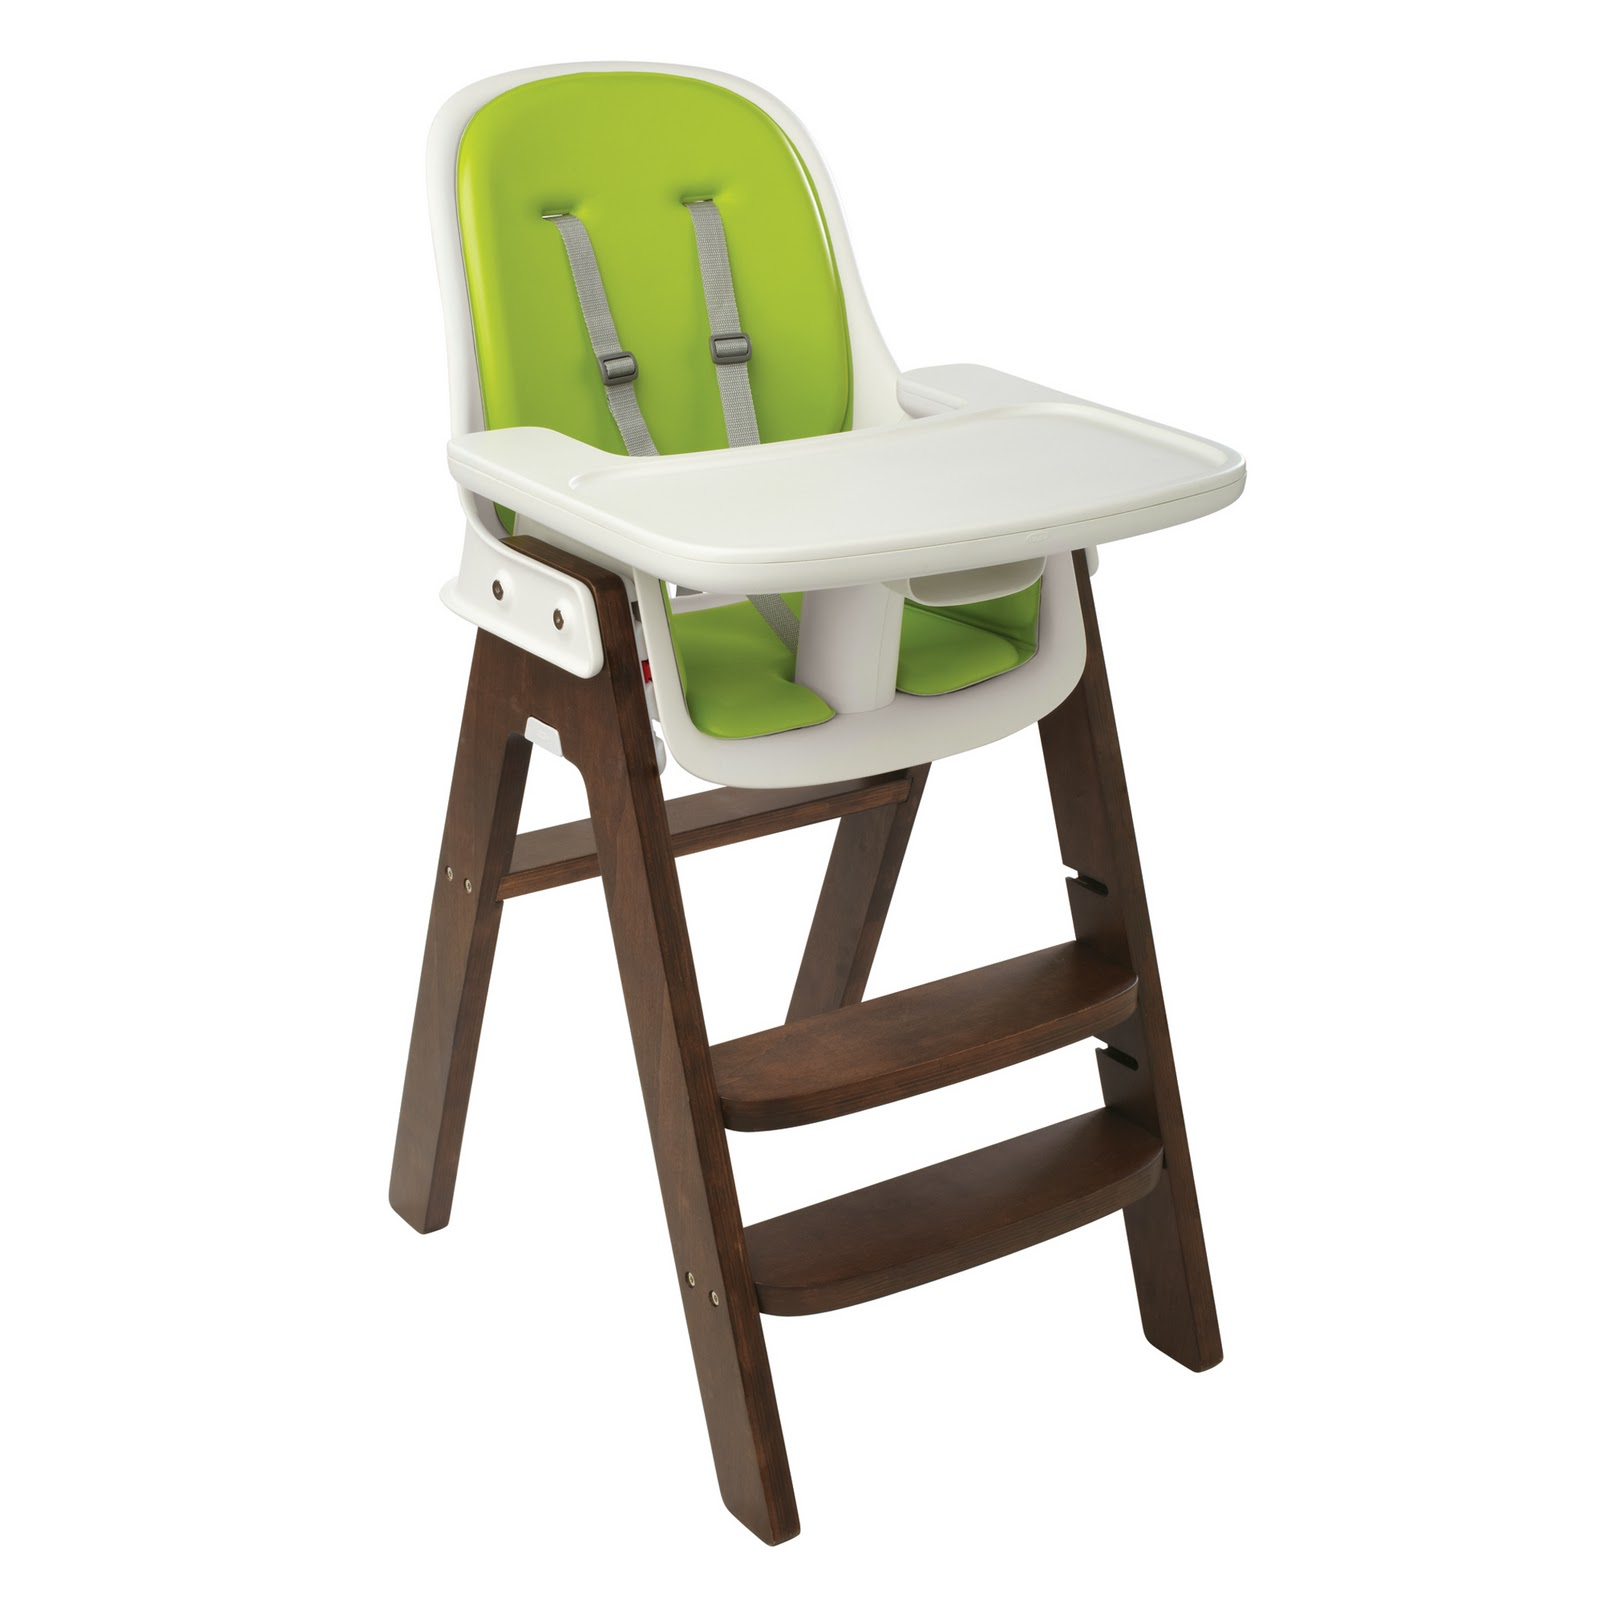 Modern Baby Digs Introducing Oxo Sprout Tot High Chairs